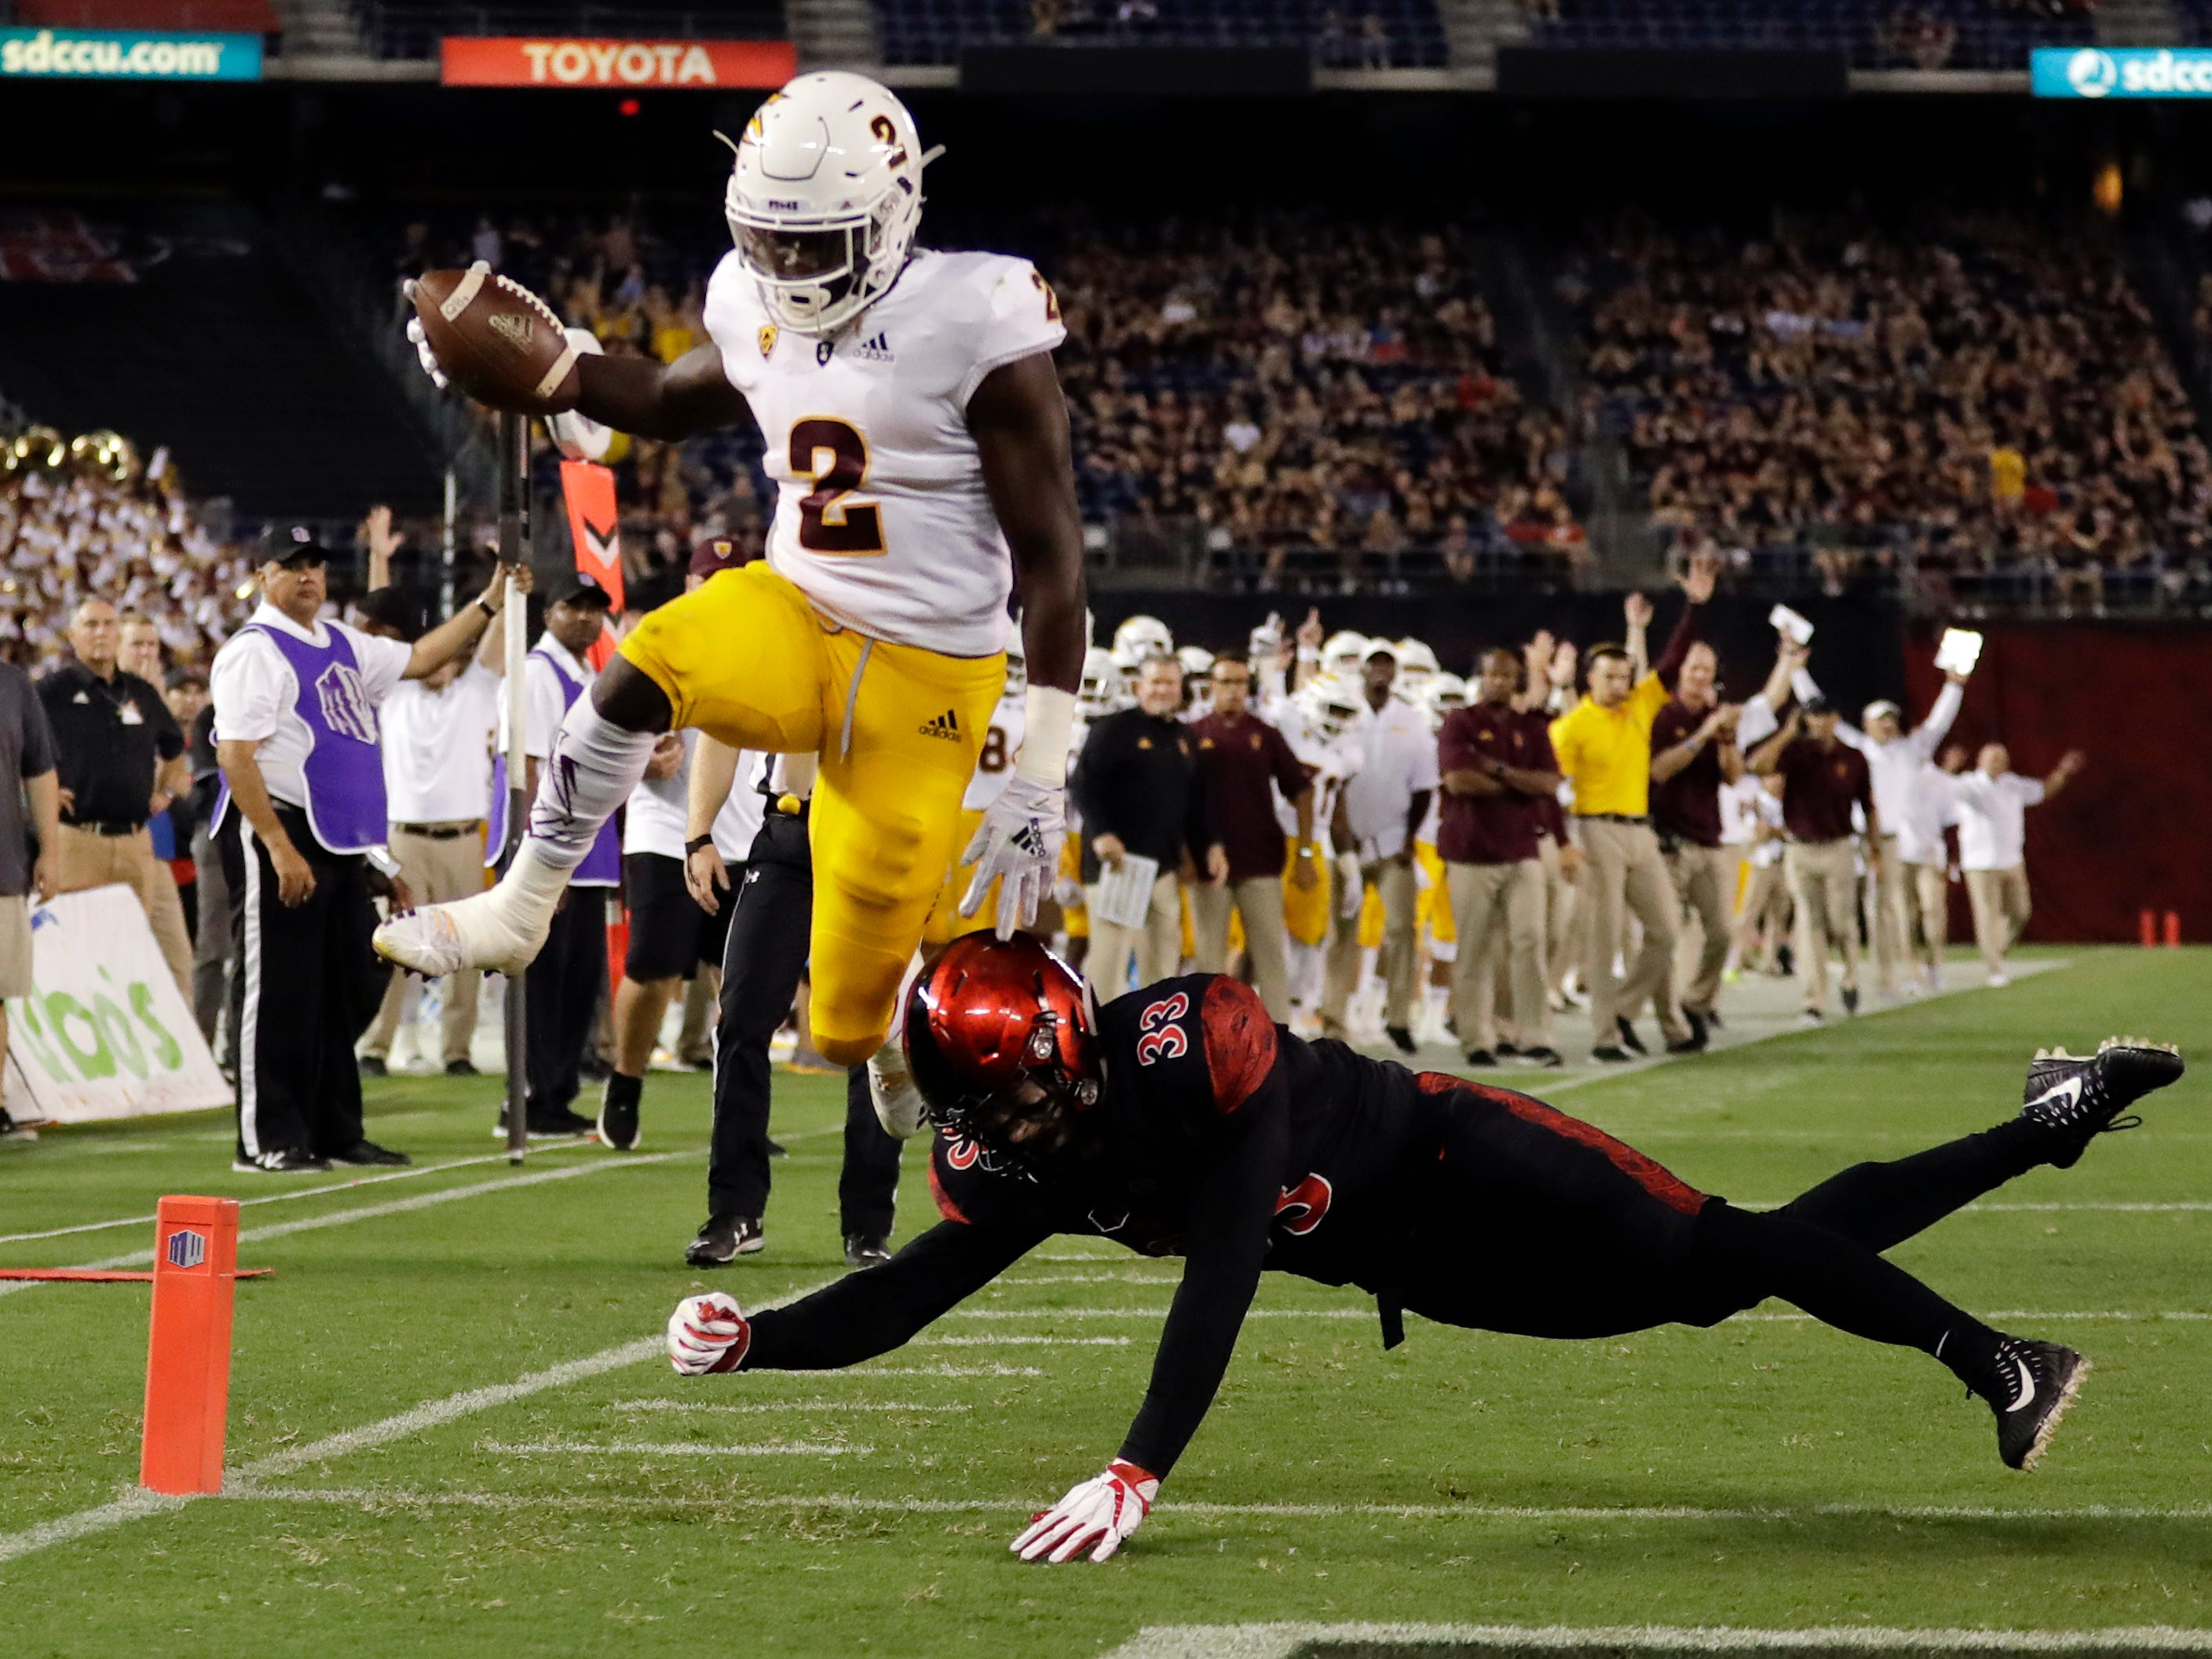 Arizona State wide receiver Brandon Aiyuk (2) goes over San Diego State safety Parker Baldwin (33) to score a touchdown during the first half of an NCAA college football game, Saturday, Sept. 15, 2018, in San Diego. (AP Photo/Gregory Bull)